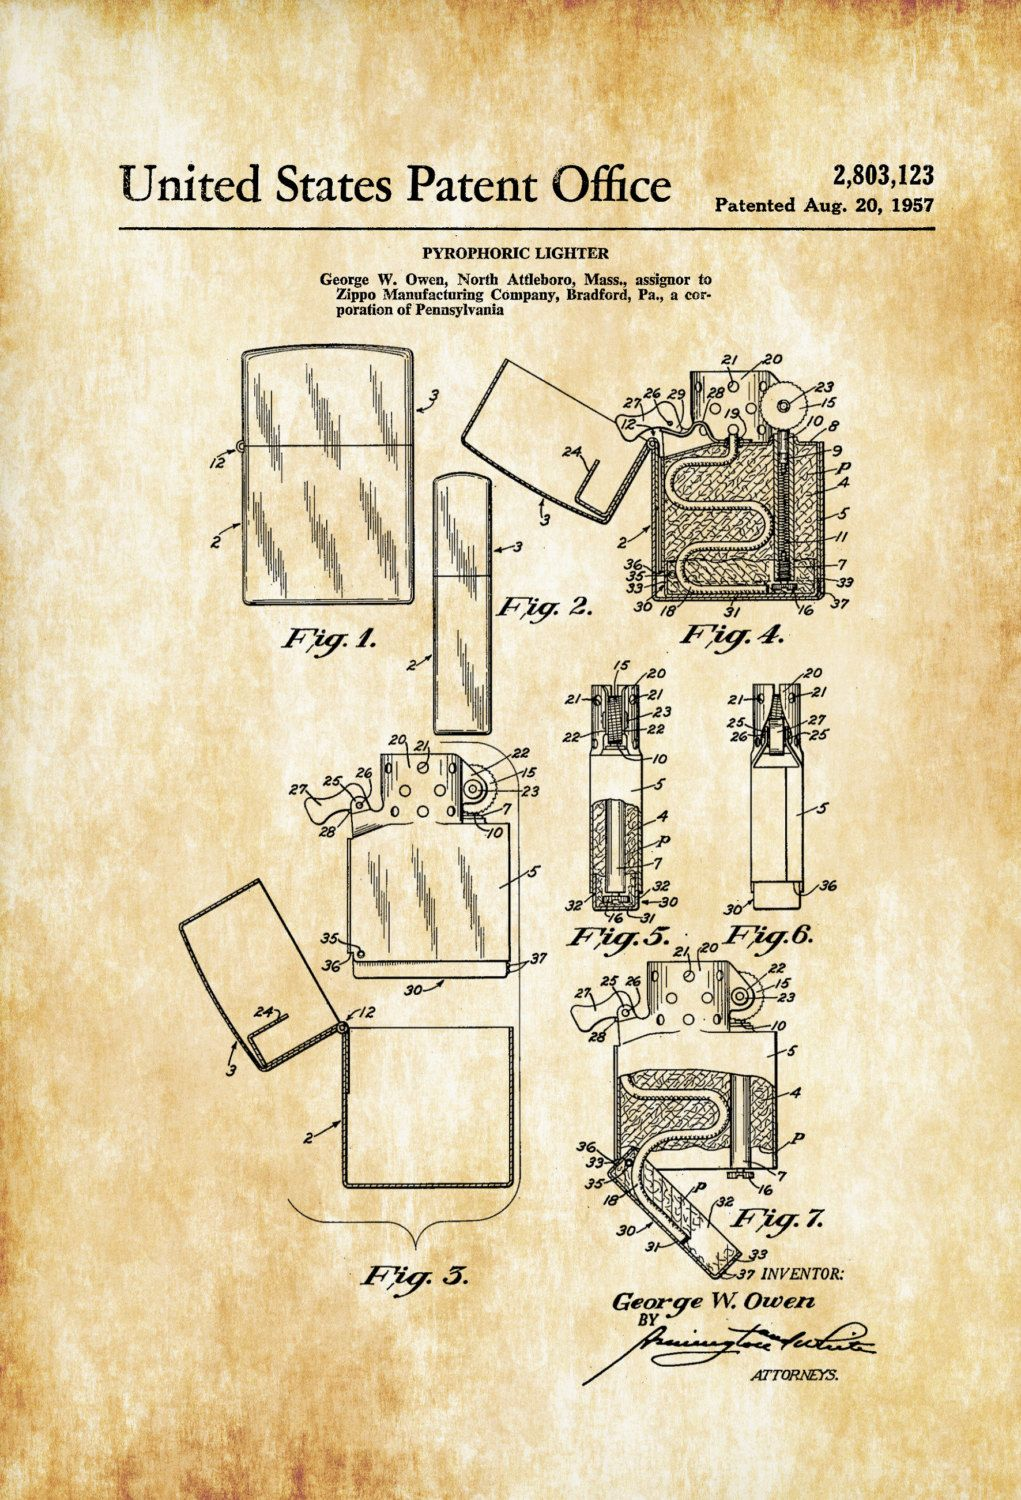 1957 zippo lighter patent decor patent print lighter patent 1957 zippo lighter patent decor patent print lighter patent vintage lighter lighter blueprint zippo patent cigar lounge decor malvernweather